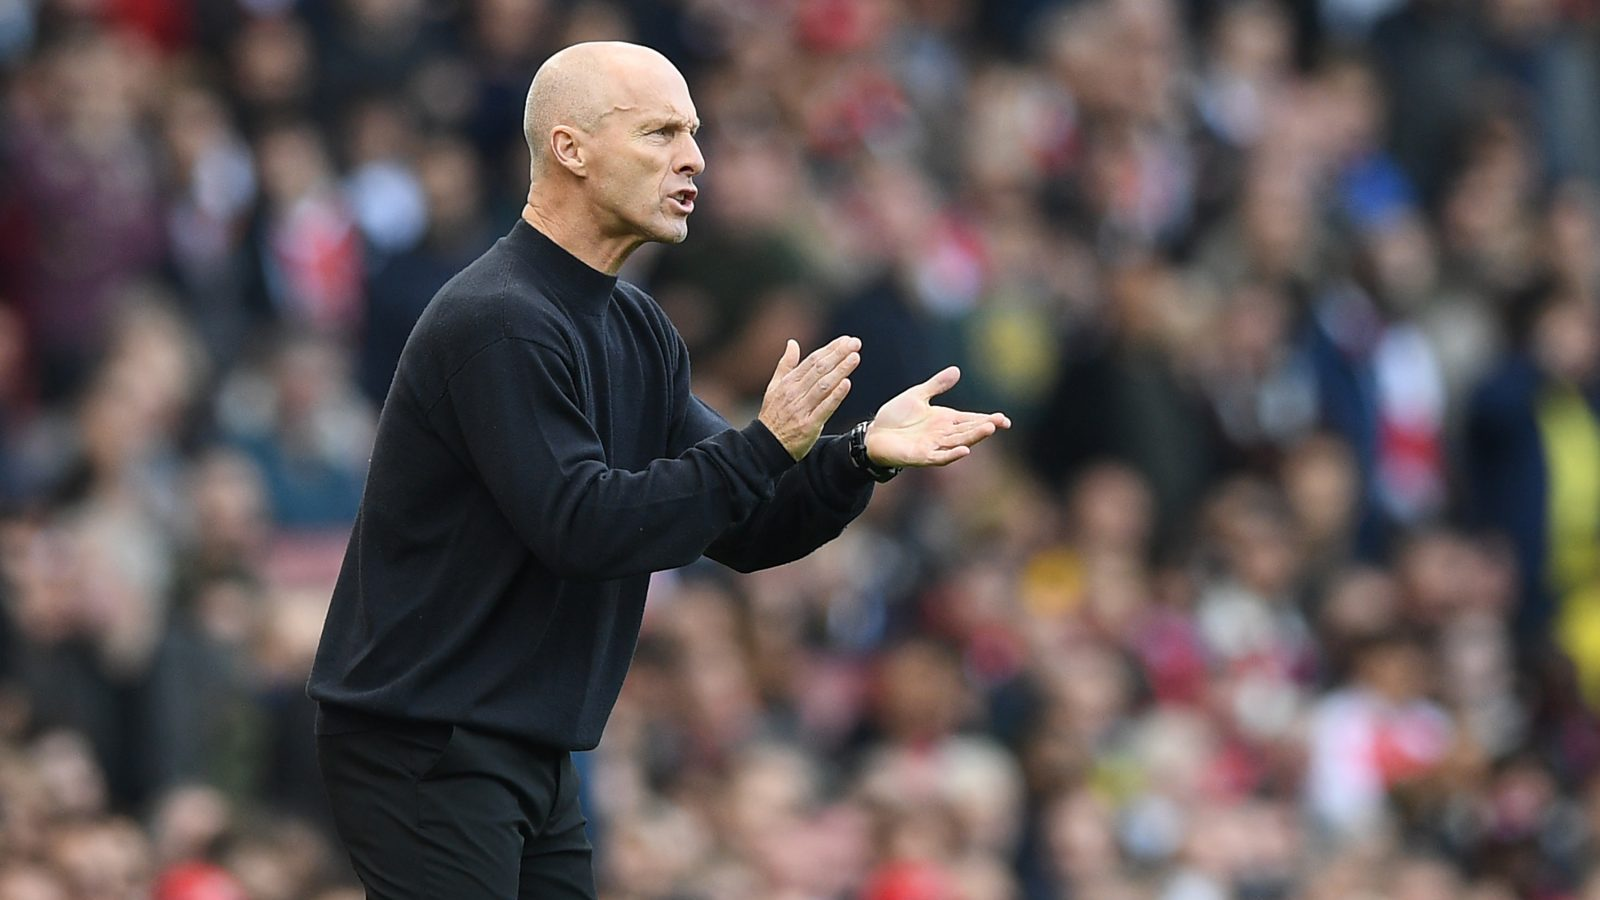 Bob Bradley frustrated with Swansea exit